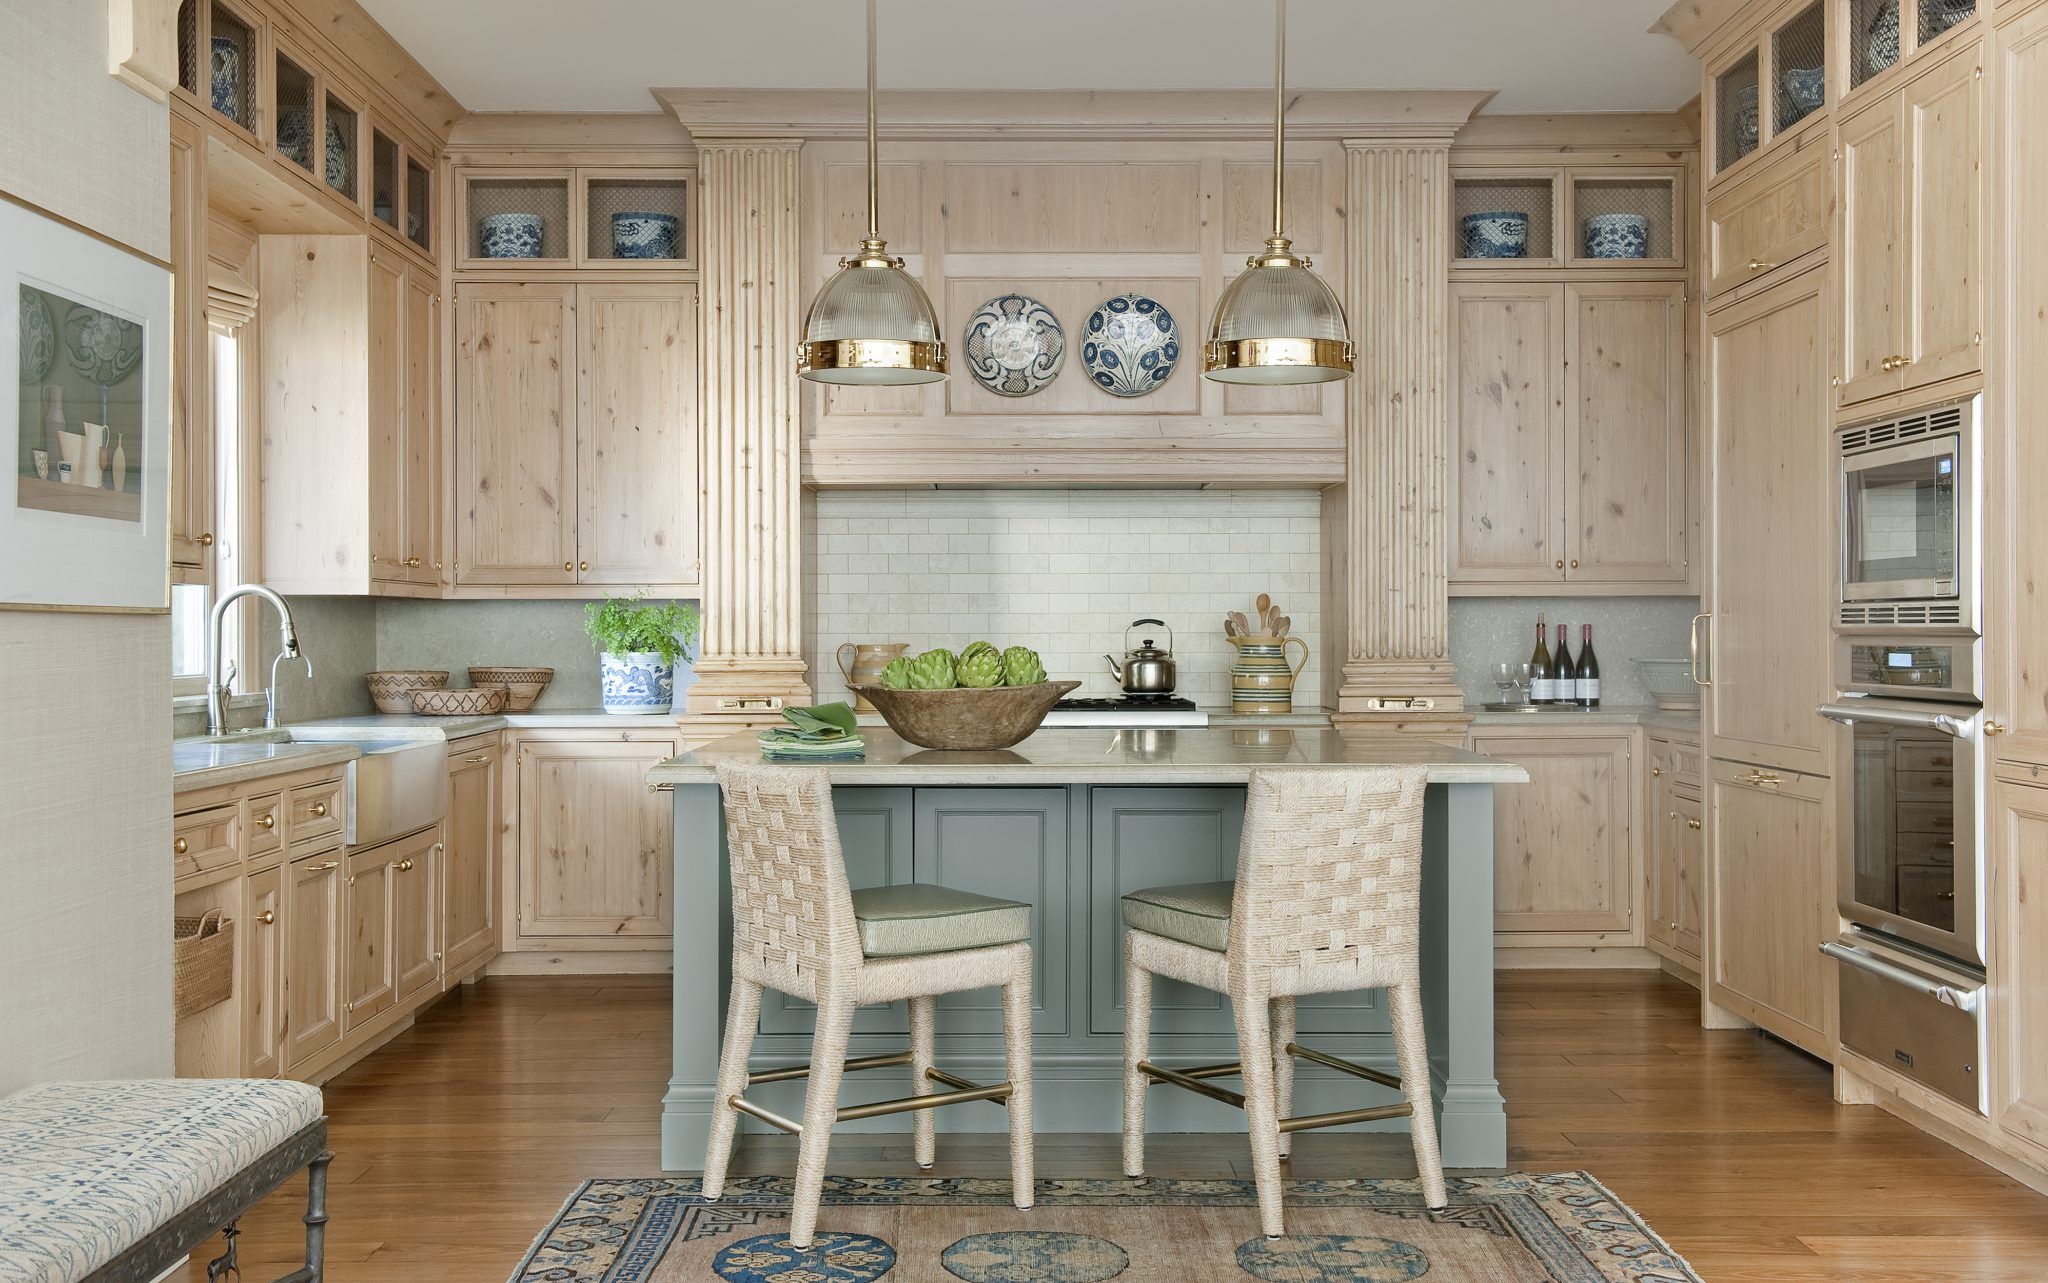 Pine cabinets and limestone counters create a natural, contemporary look in the kitchen. The holophane ceiling pendant light fixtures are from Ann Morris Inc., and the counter stools weresourced fromthe Wicker Works. Antiques, however, are still present: the English mochaware country jugs are from around 1880, as is the wooden dough bowl.